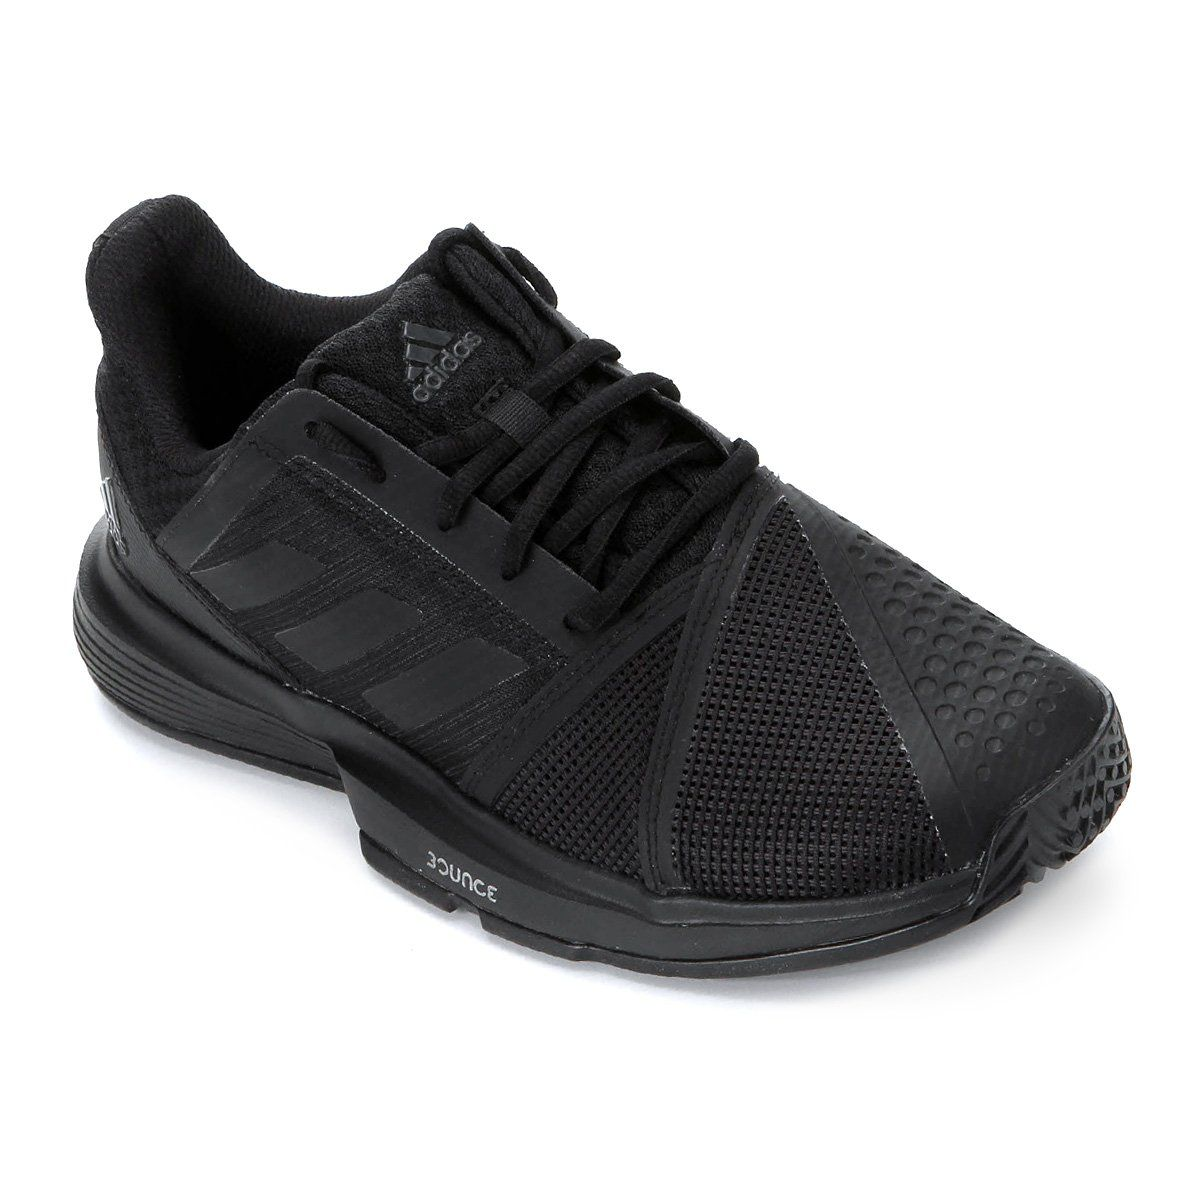 Tênis Adidas CourtJam Bounce Masculino